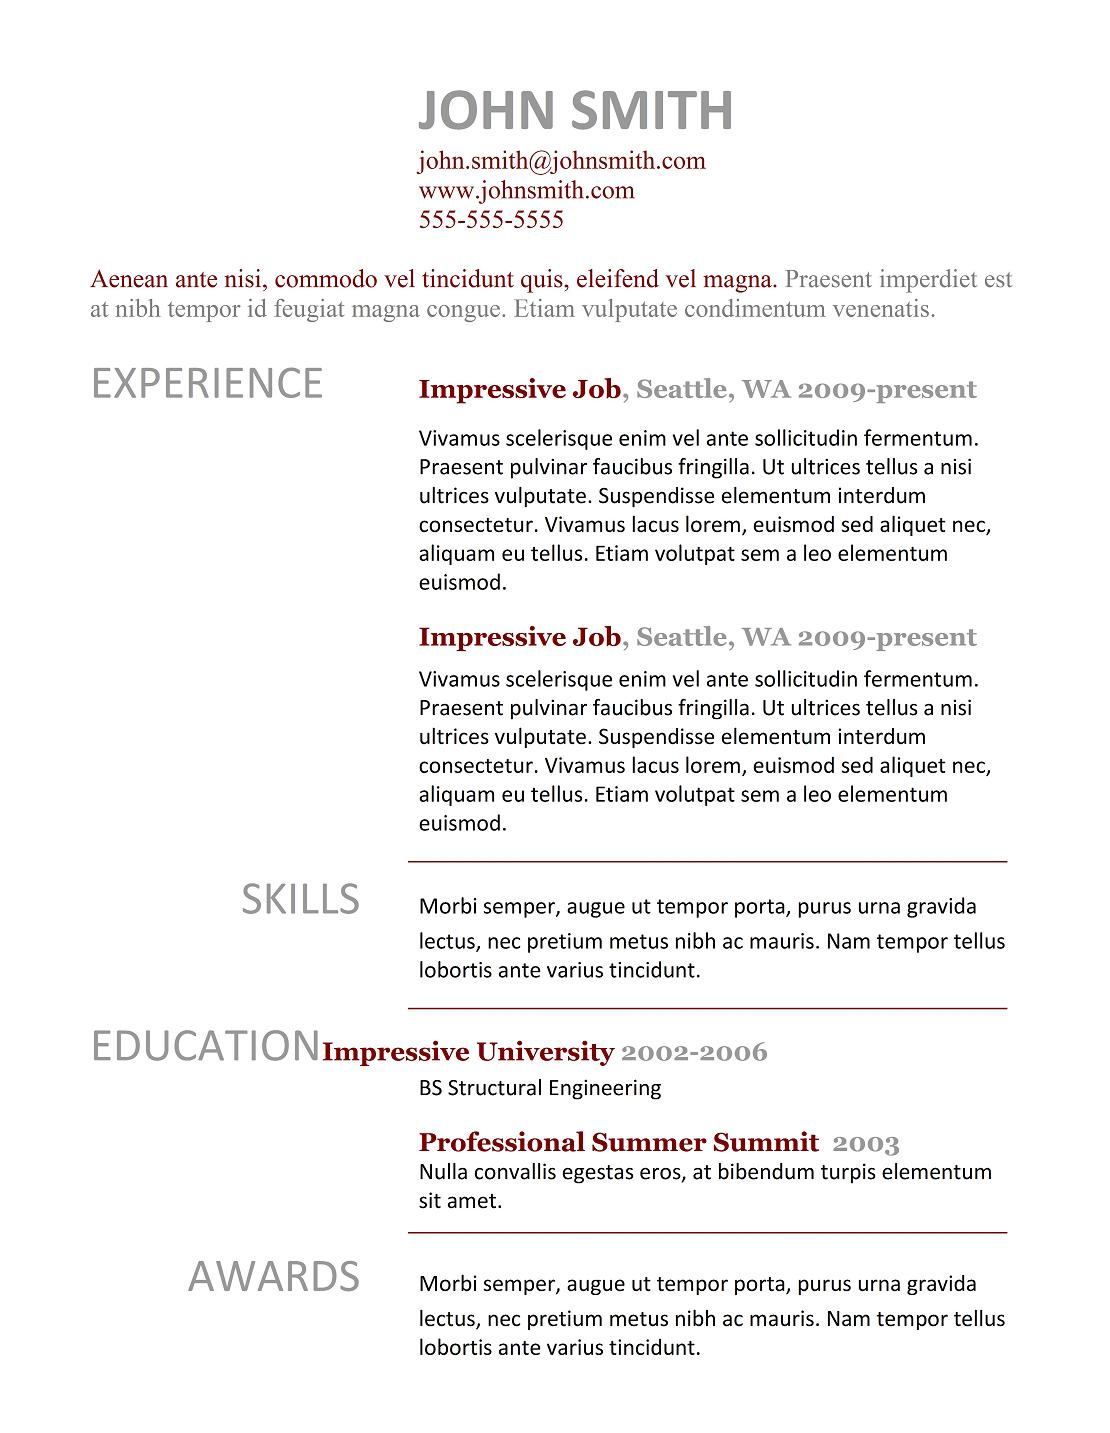 resume templates for - Resume Sample For Fresh Graduate Free Download